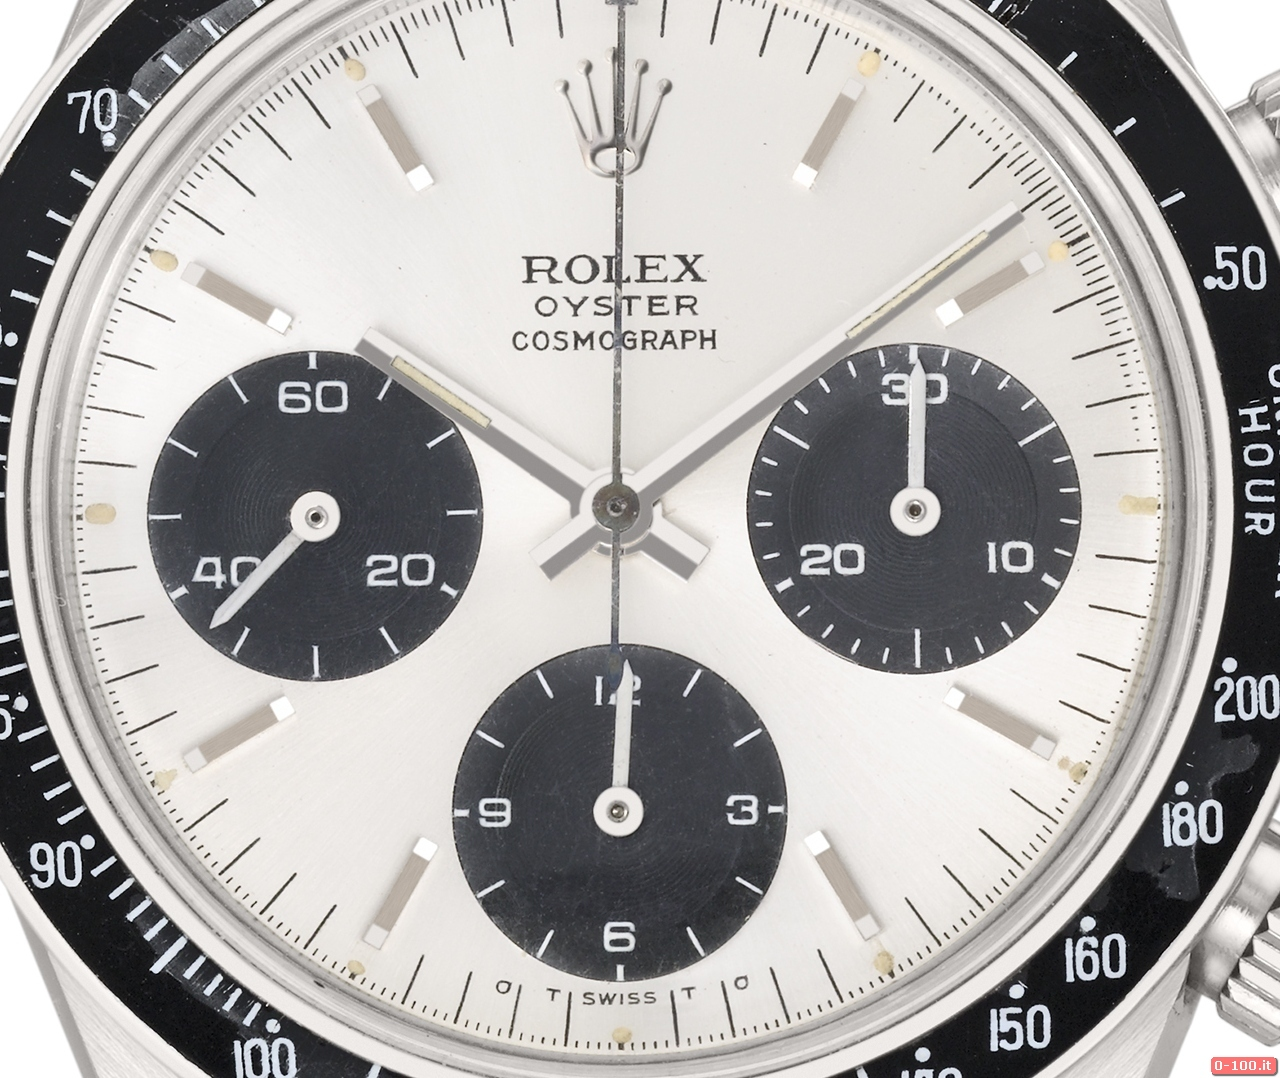 Rolex_FAP Military Oyster Cosmograph_Christies30-100